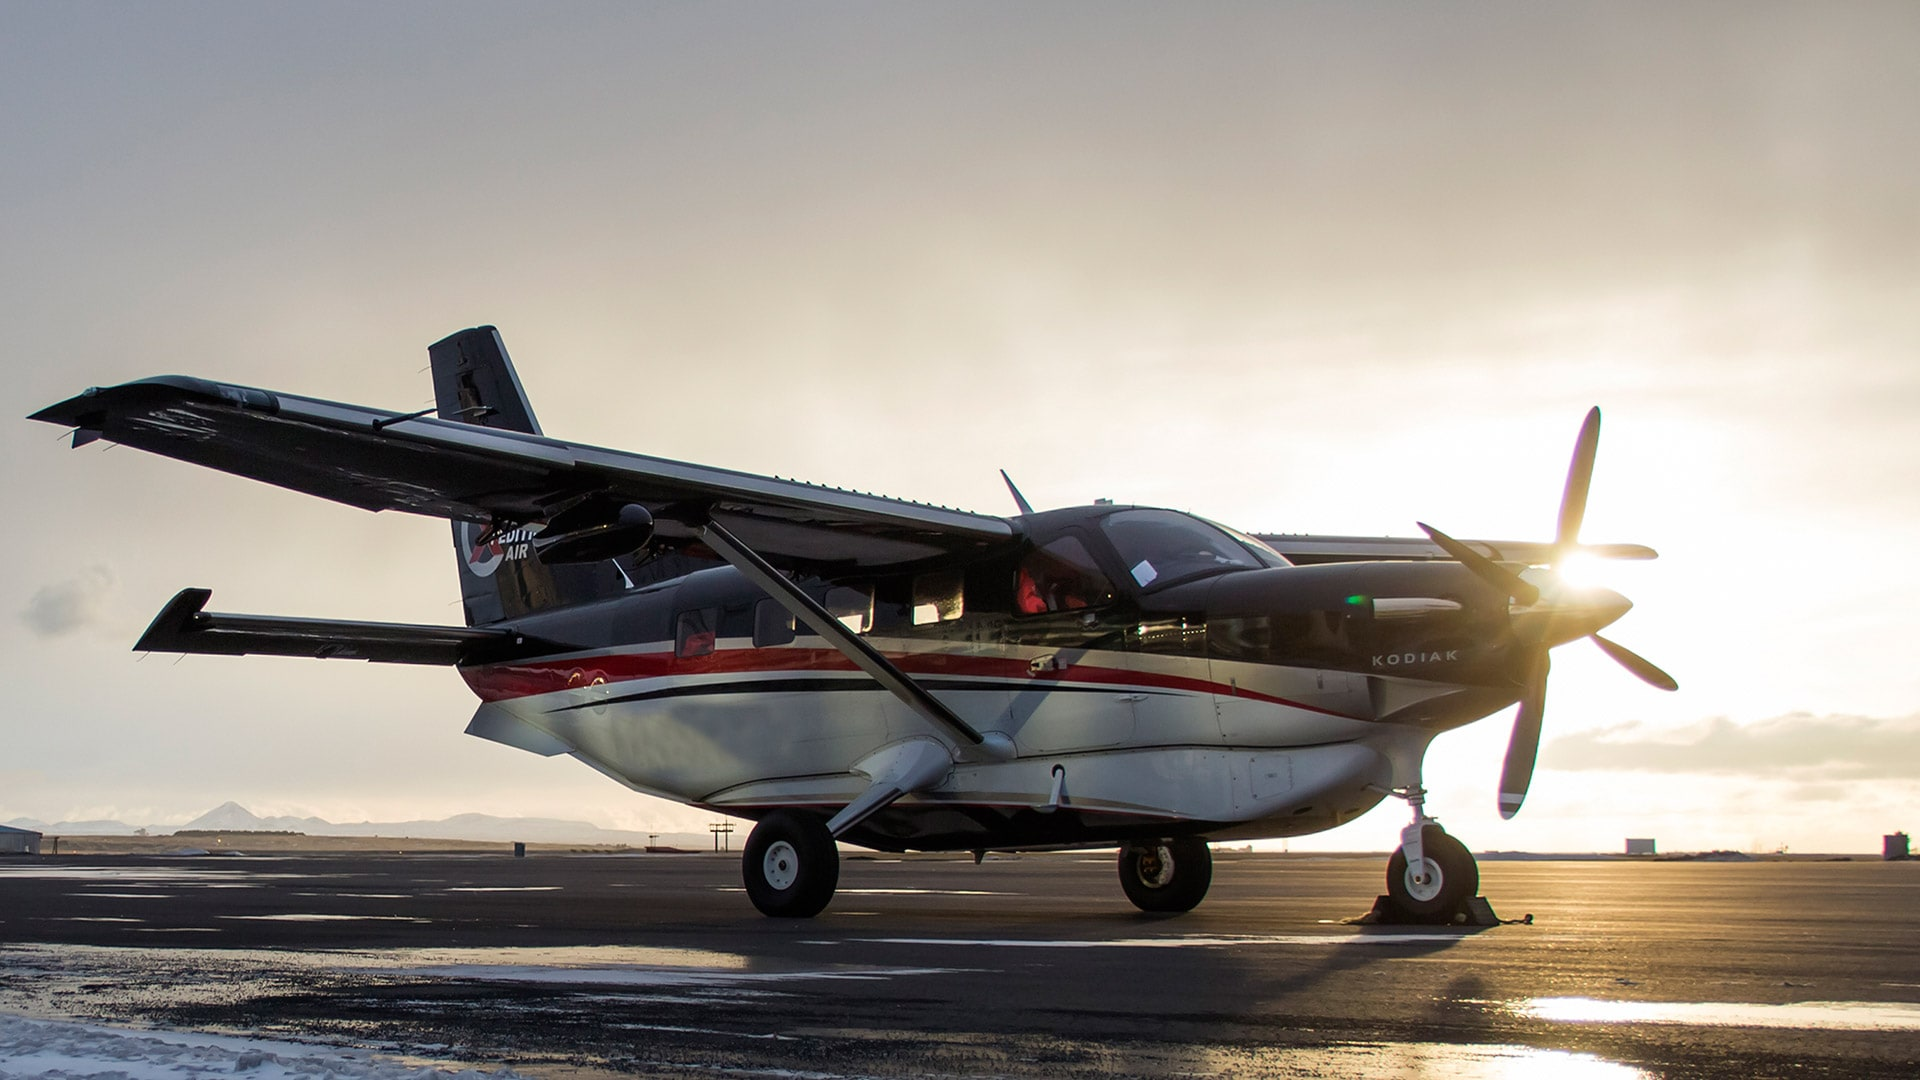 The New Kodiak Aircraft Dedicated For Mission Service Sits Pleted And Ready In Factory At Aviation Sandpoint Idaho